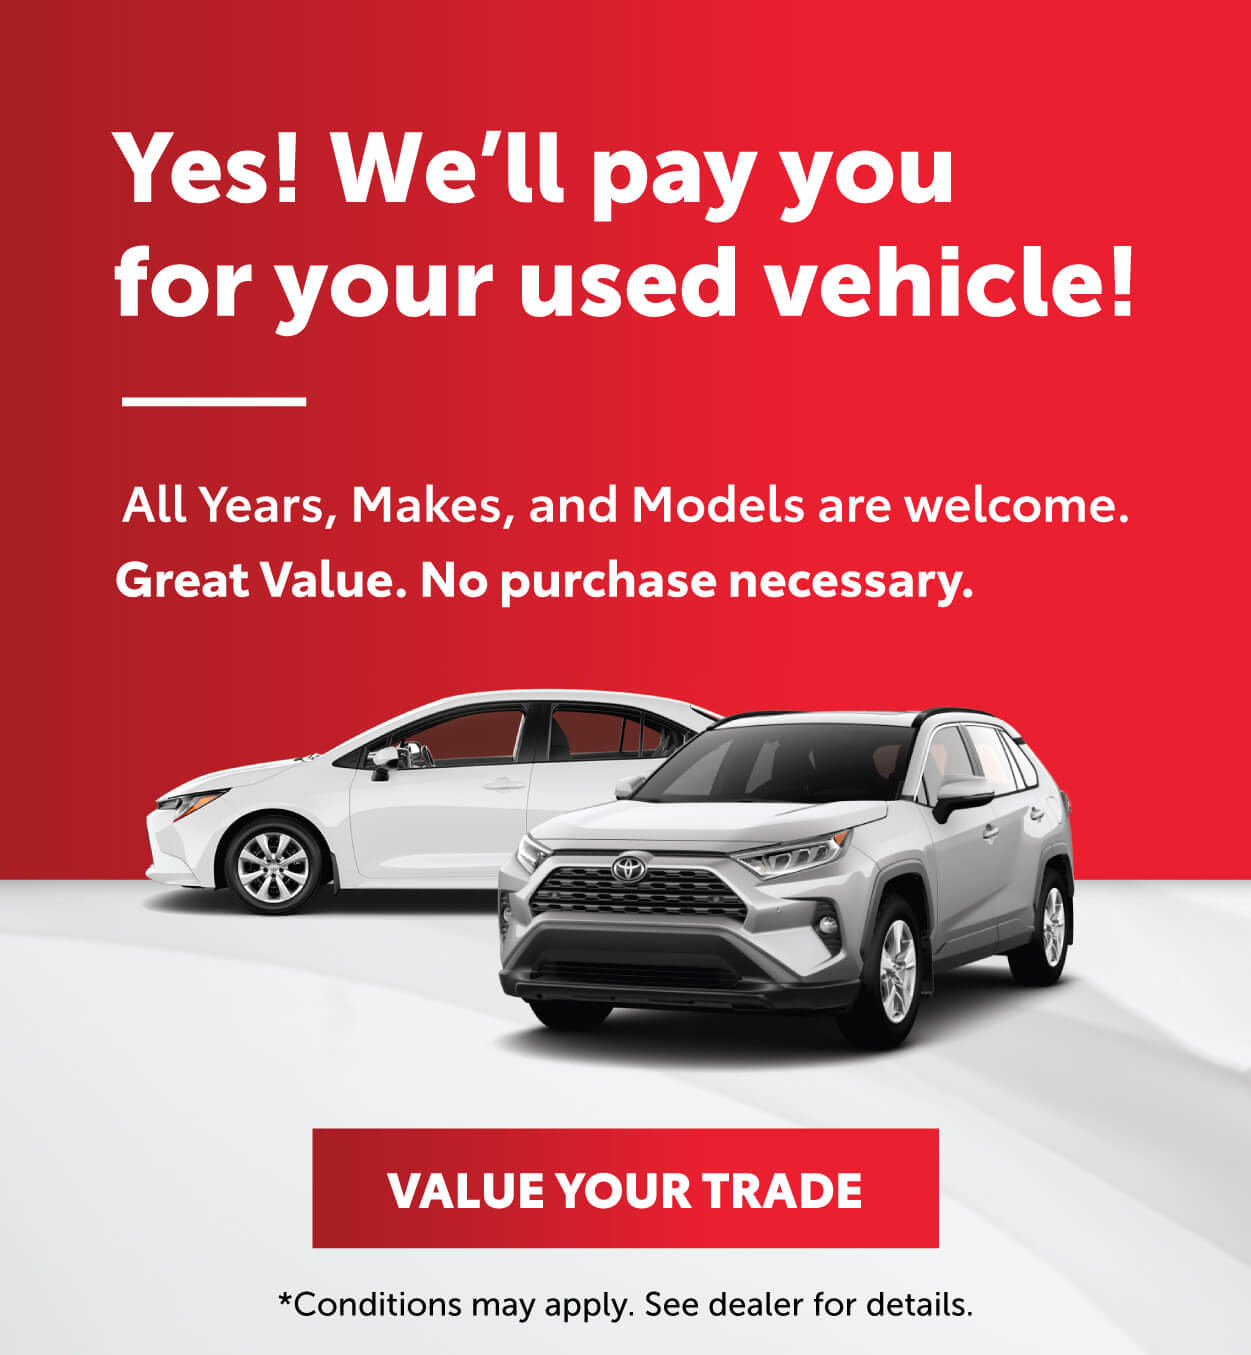 Toyota Trade In offer at Georgetown Toyota